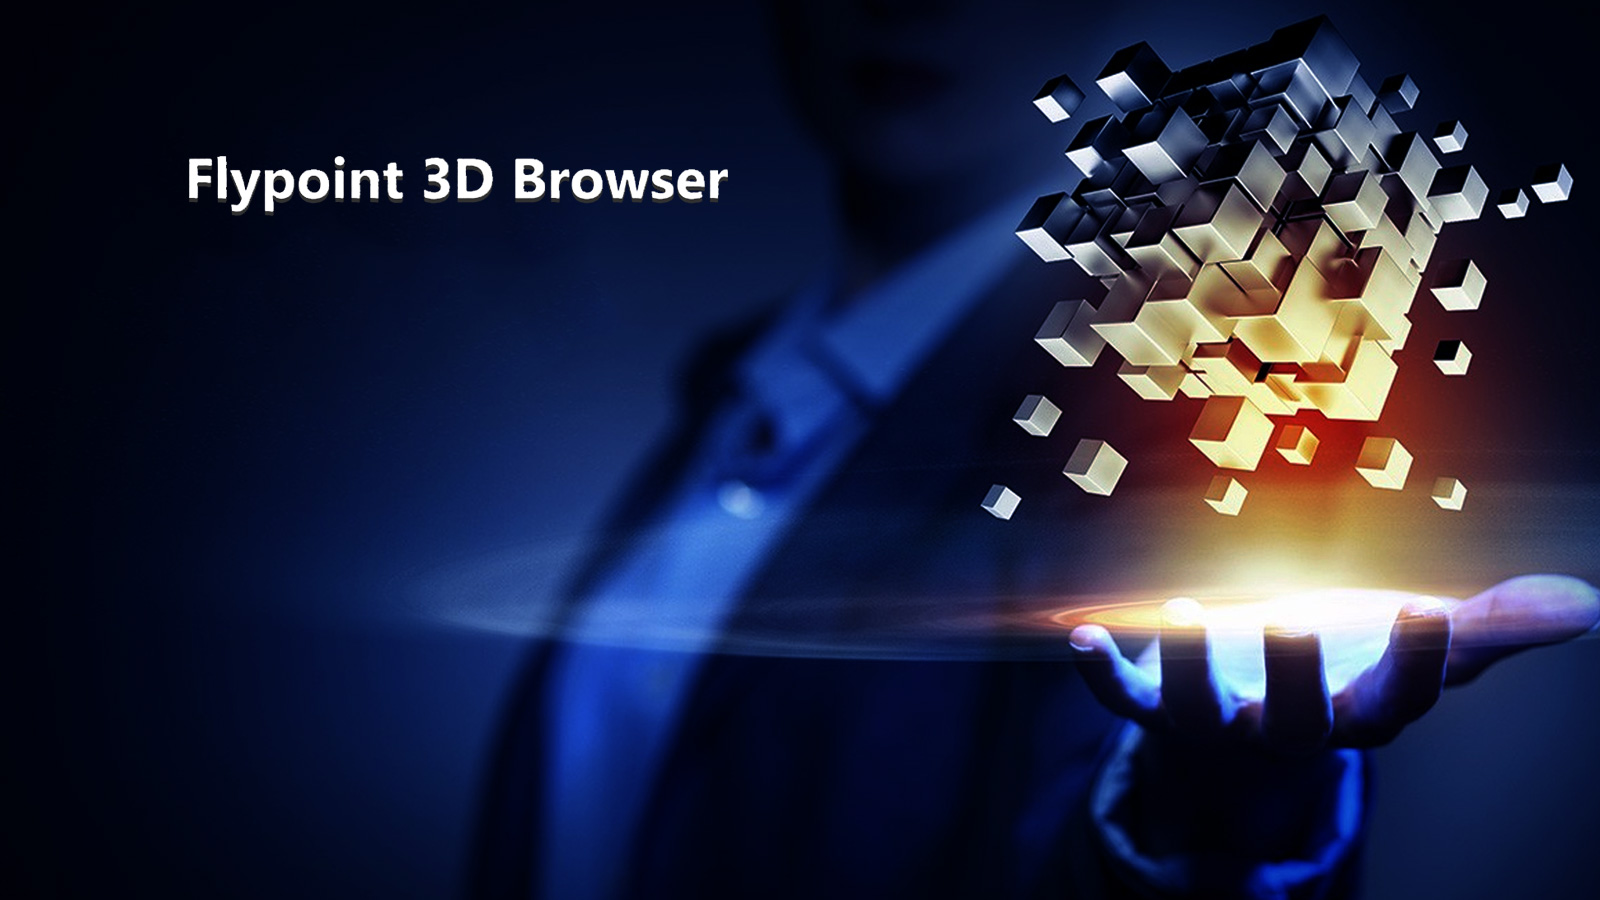 New Internet: 3D, Animation, Interactivity and No Programming